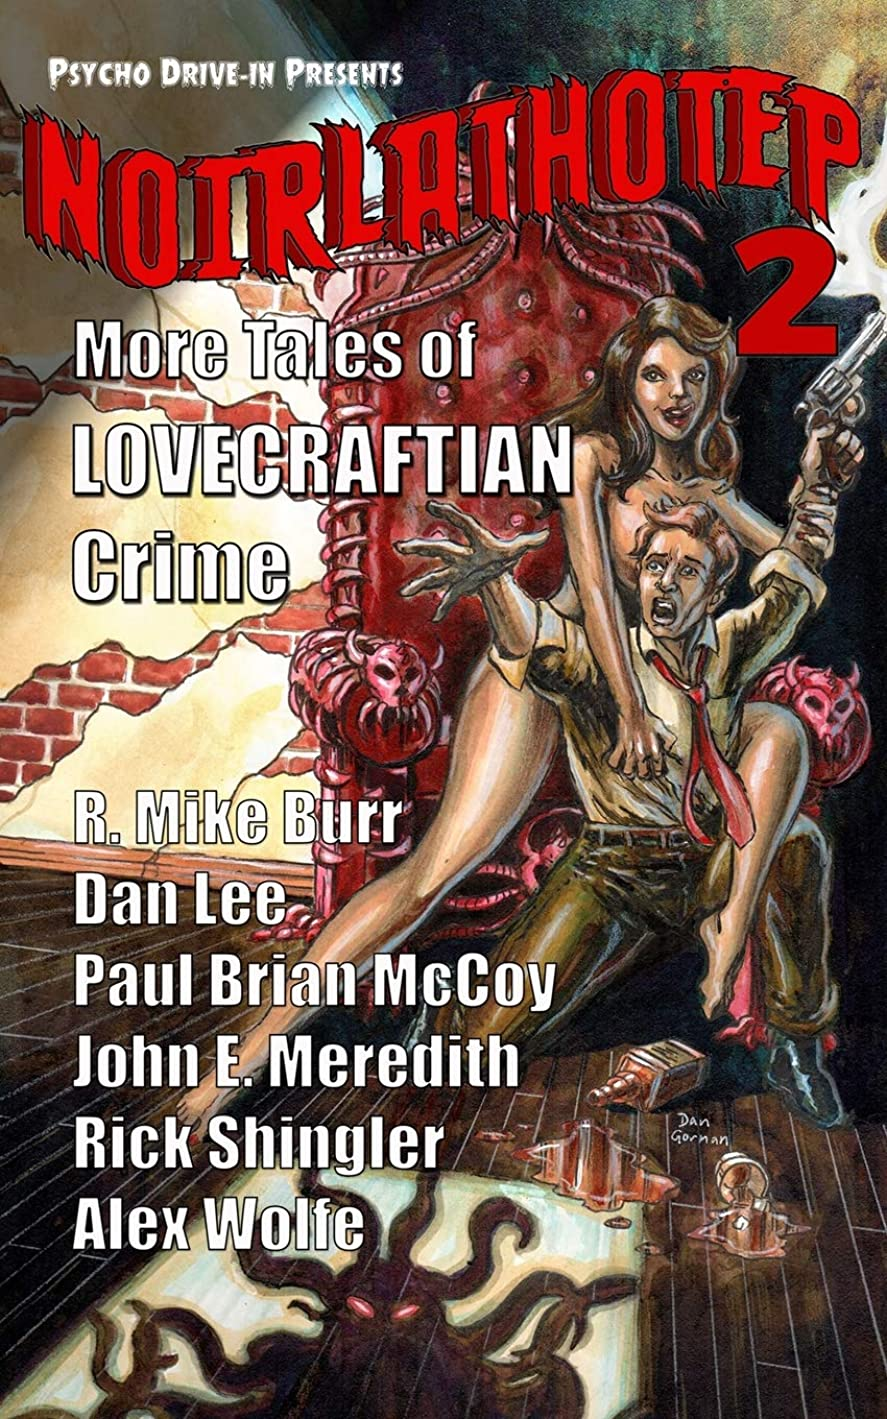 自明一貫性のない緩めるNoirlathotep 2: More Tales of Lovecraftian Crime